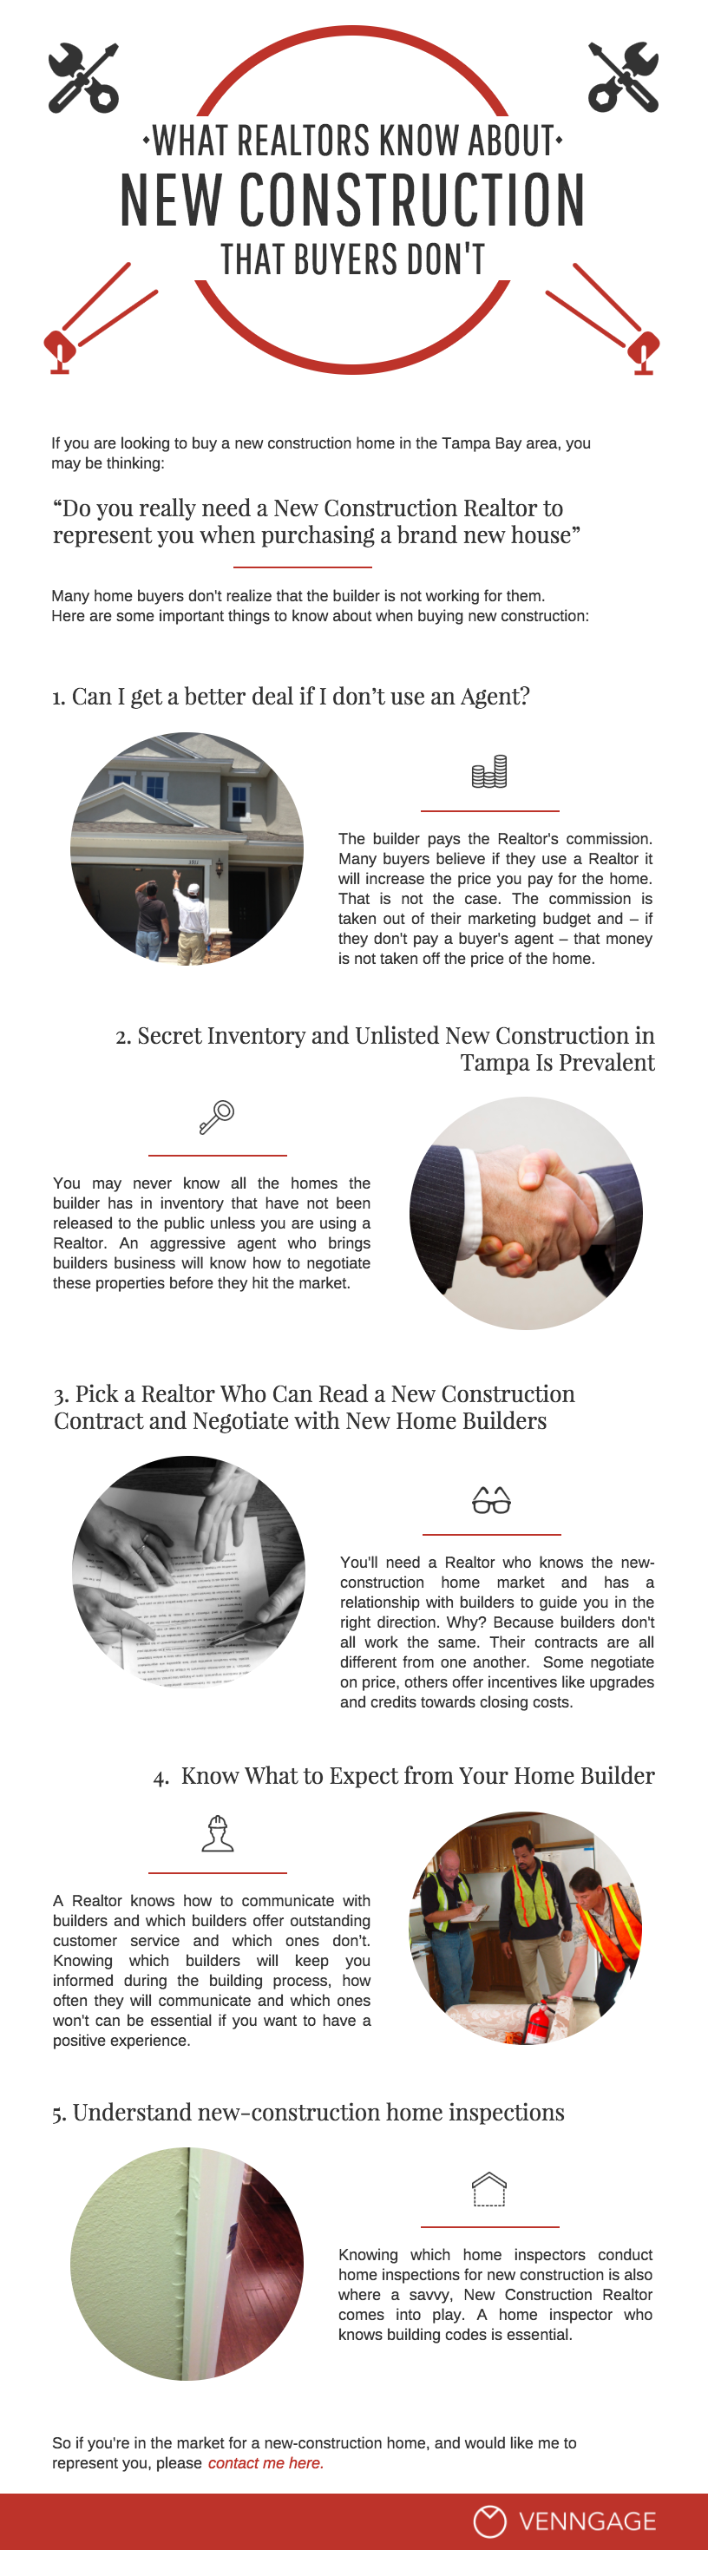 New Construction Real Estate Infographic Template Venngage